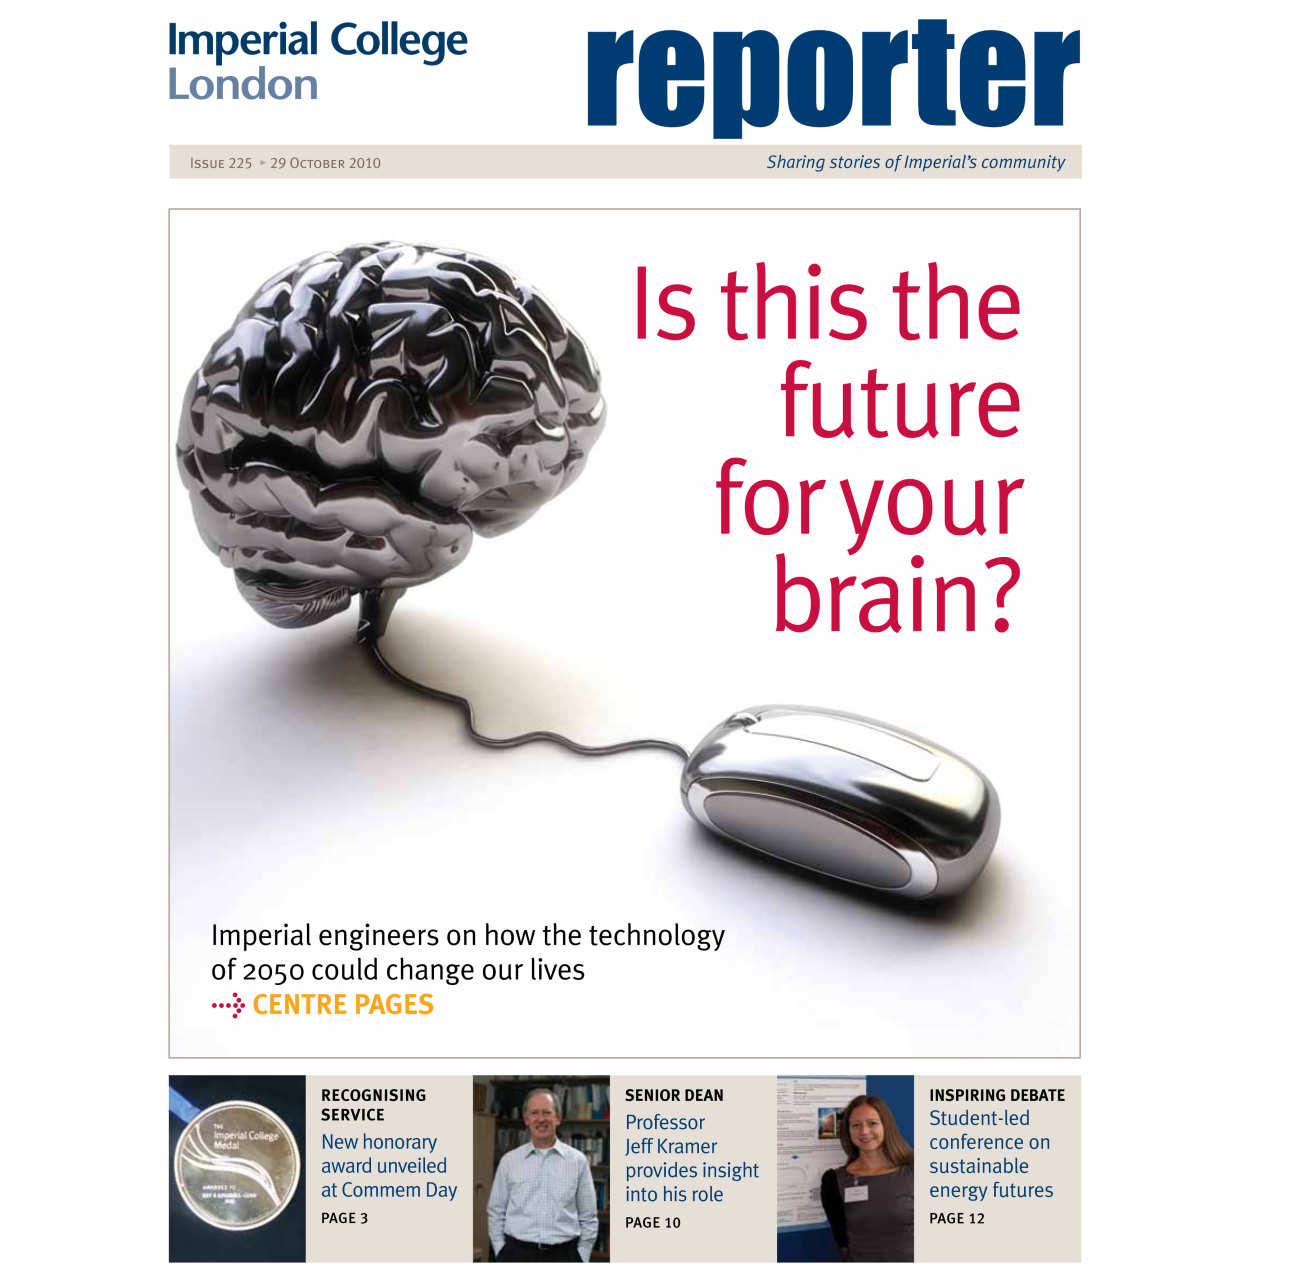 Issue 225 - 29 October 2010